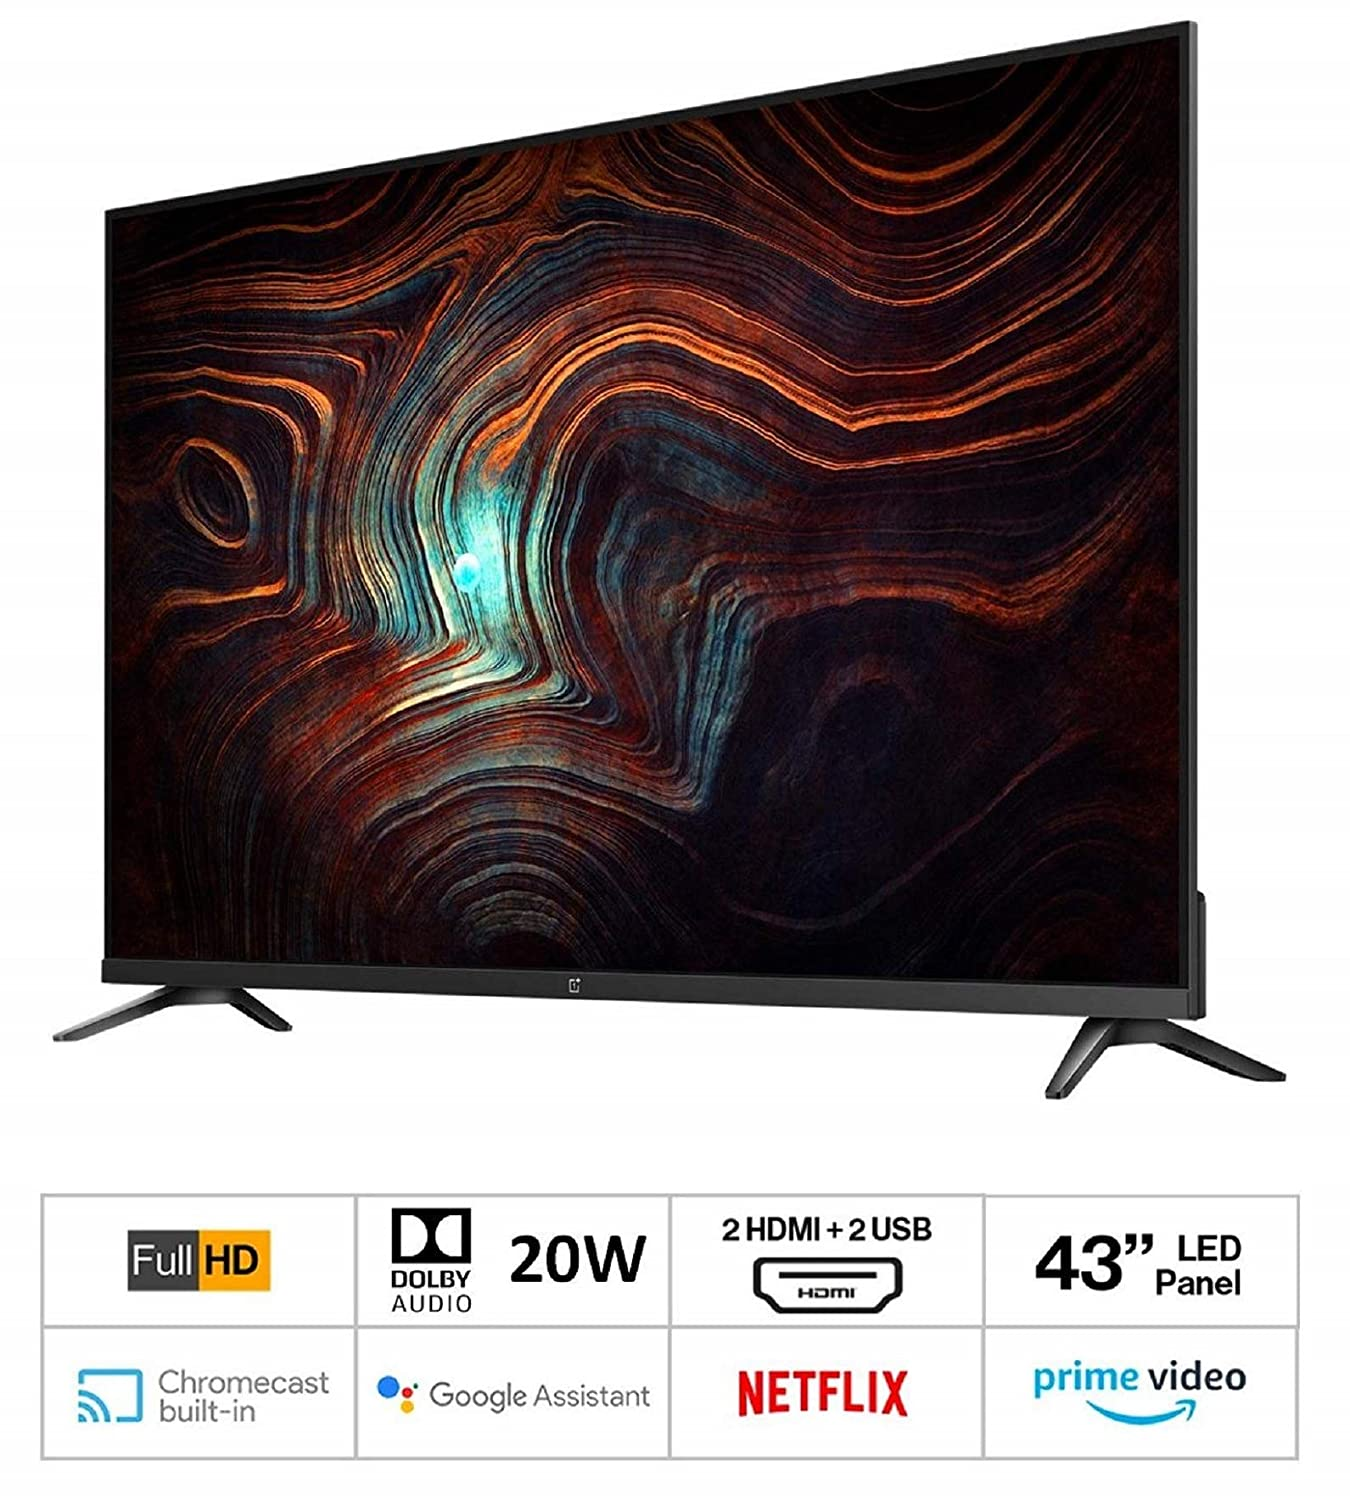 OnePlus Y Series 108 cm (43 inches) Full HD LED Smart Android TV